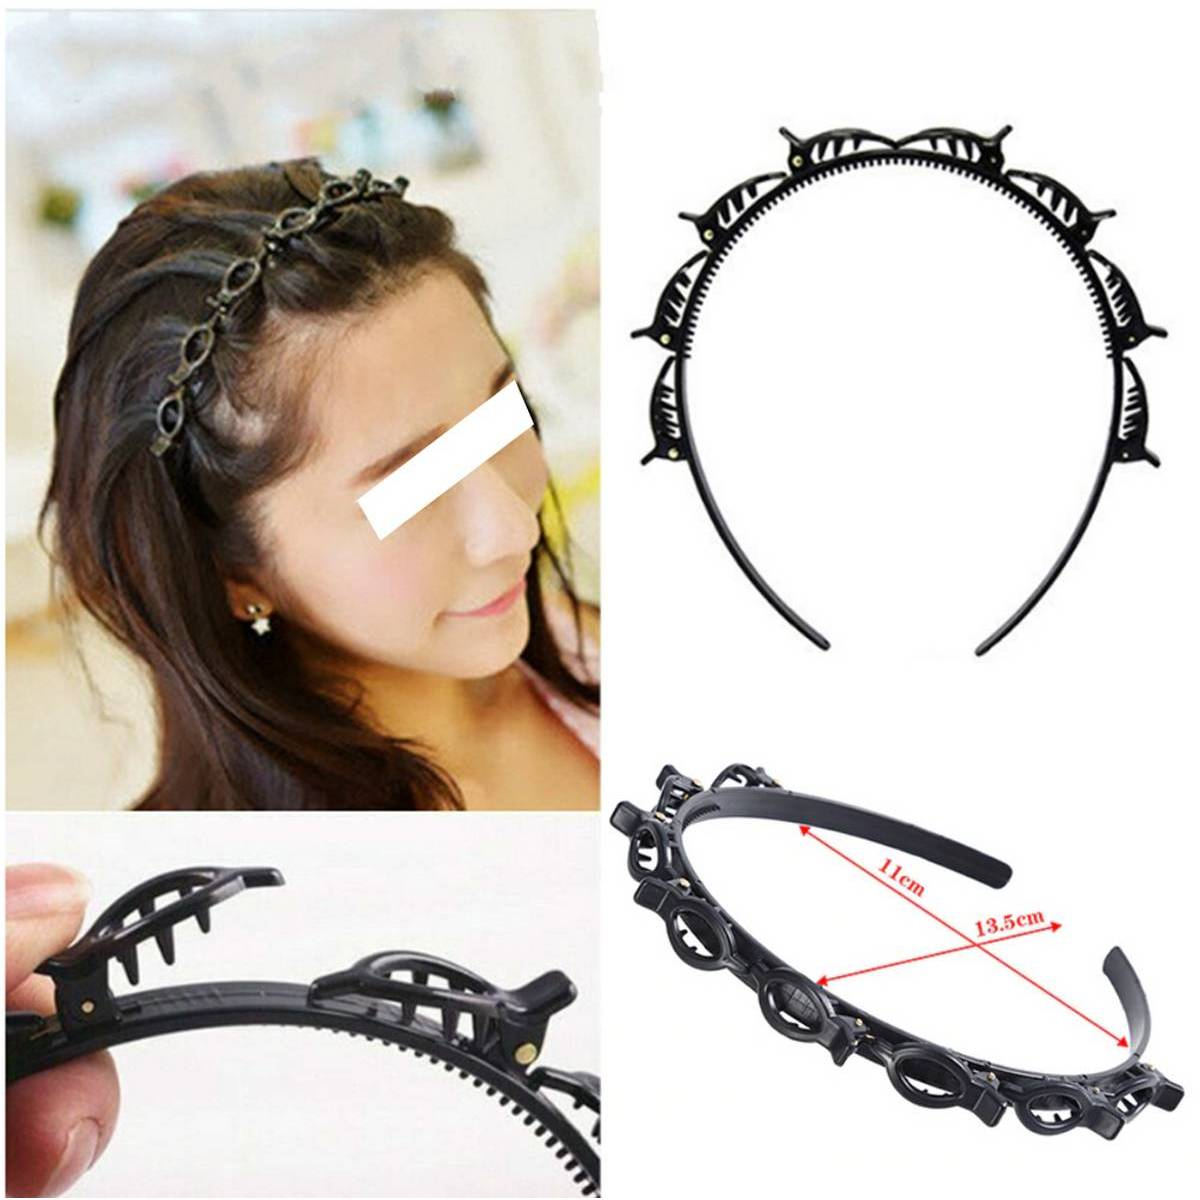 Fashion Jewelry Double Bangs Clip Hairstyle Hairband Accessories